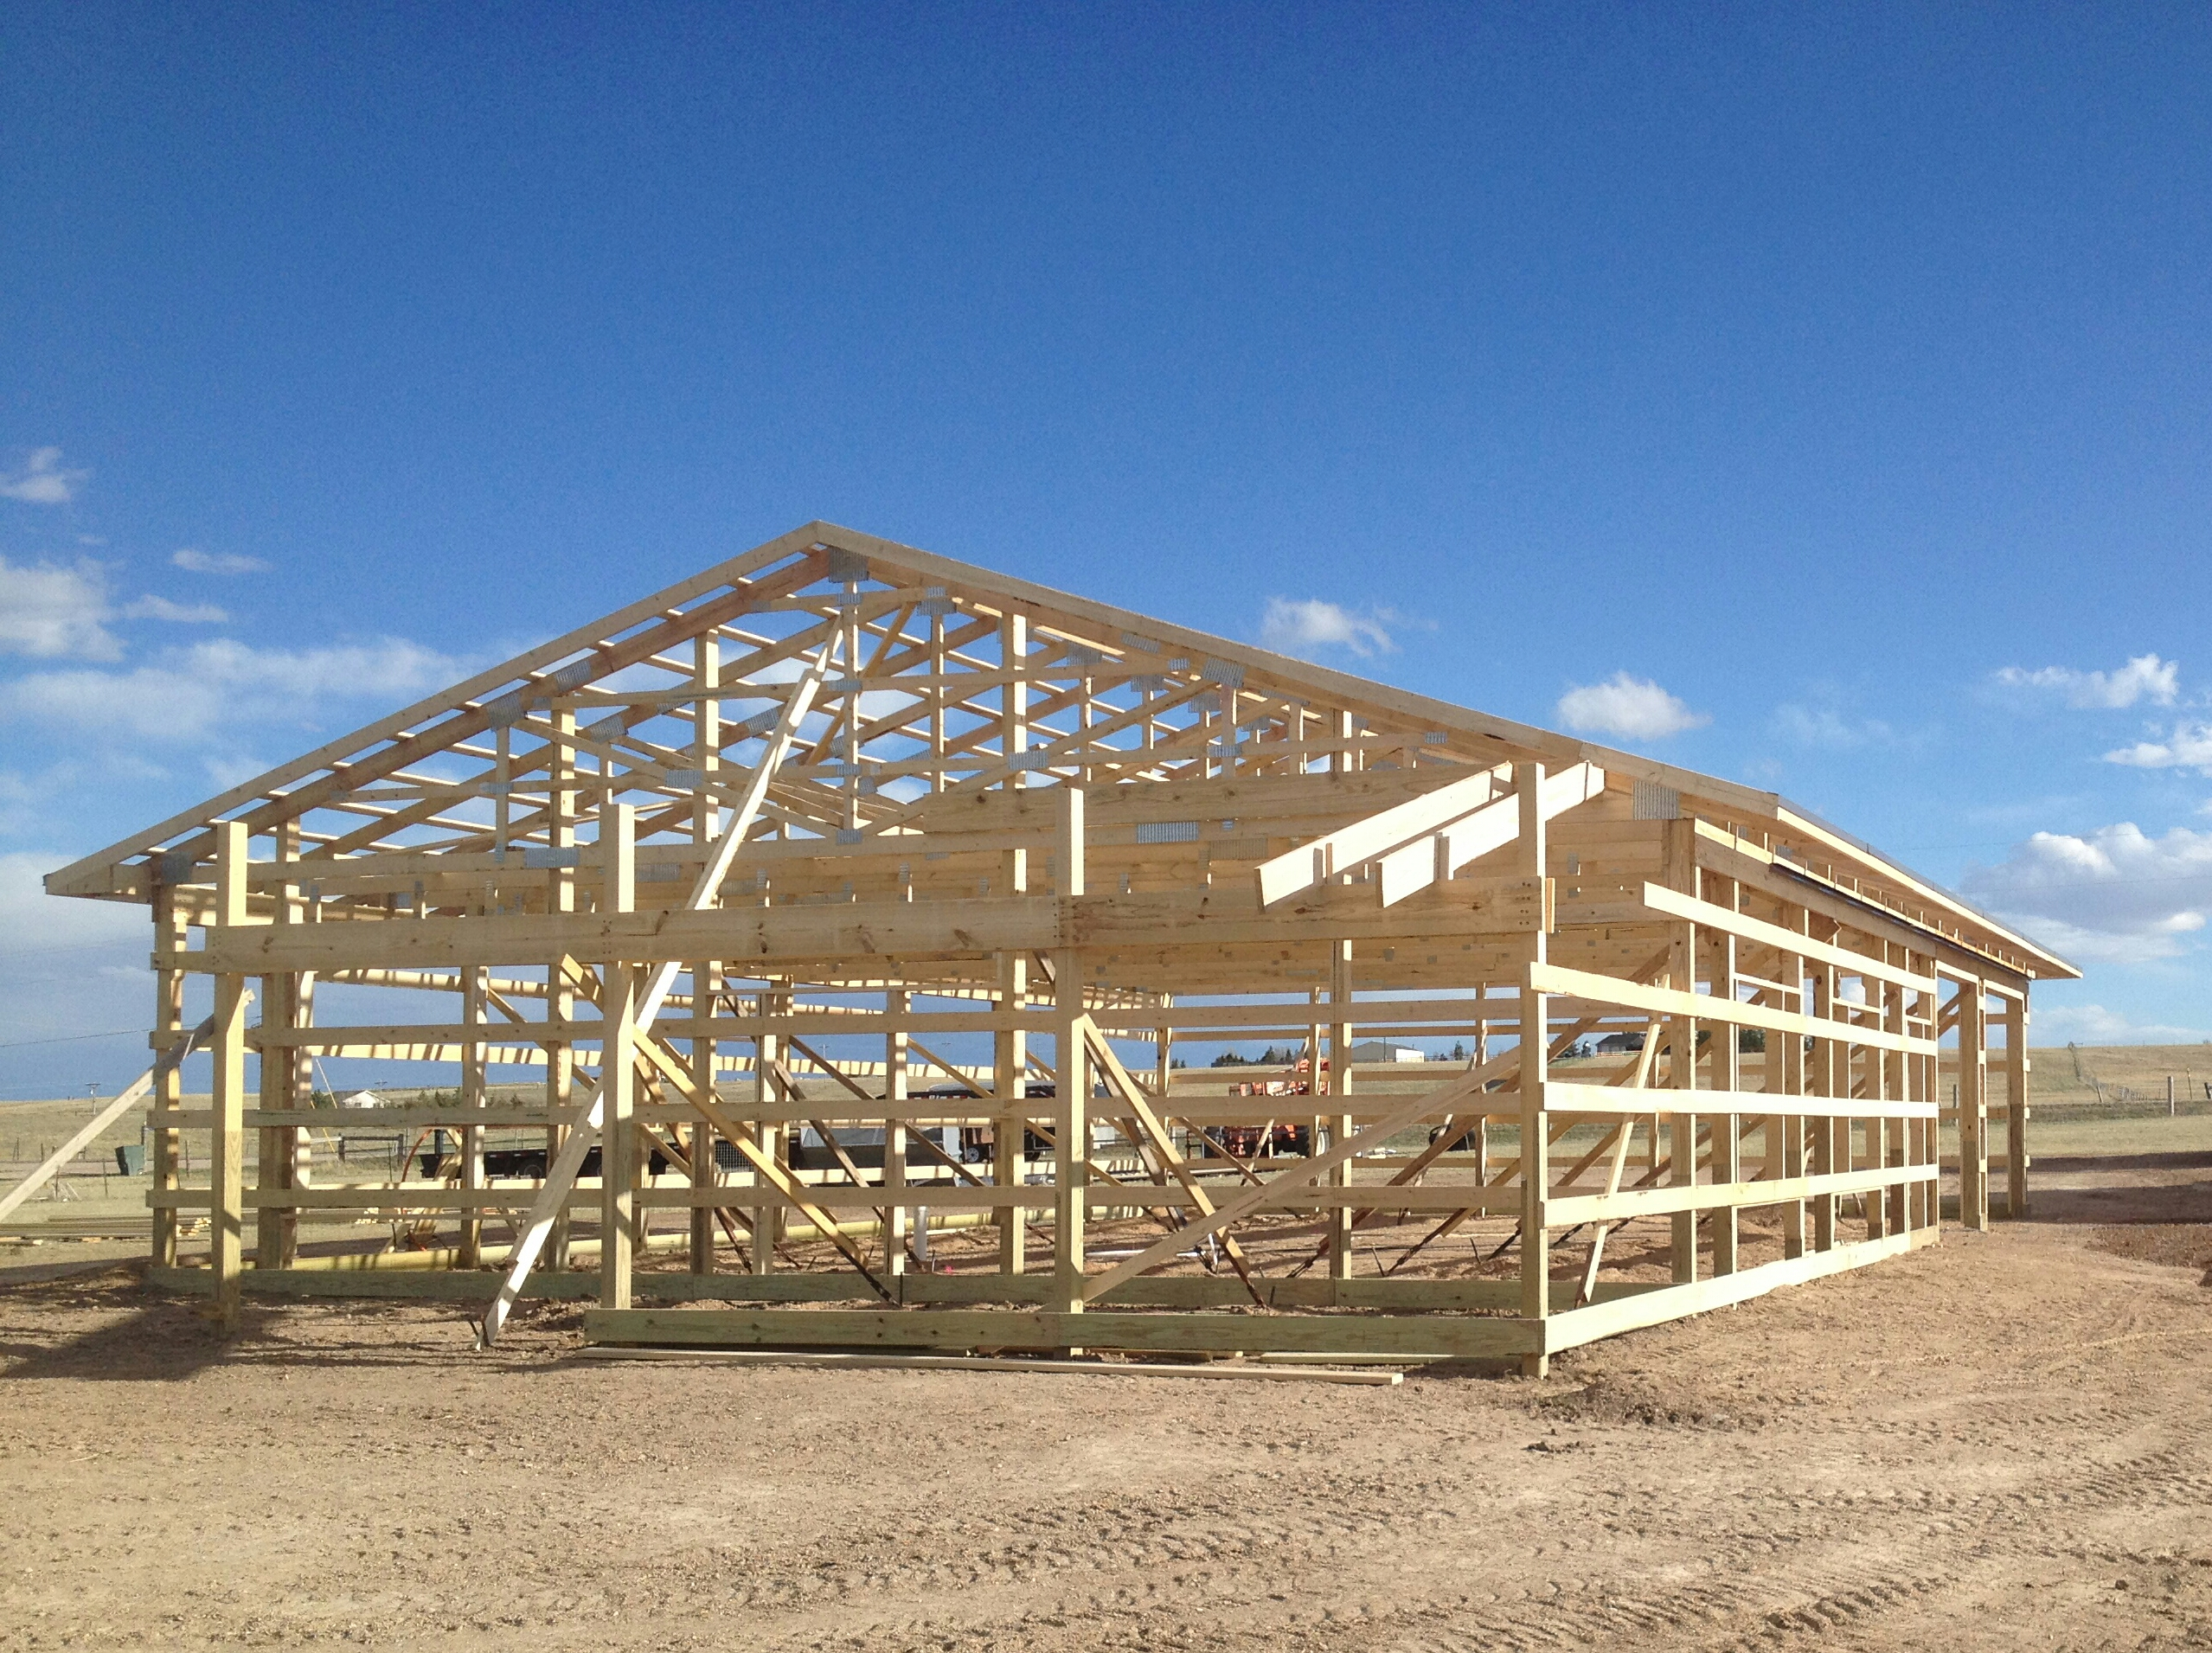 x big open and smith enclosed barns built pole barn shelter metal fully dsc